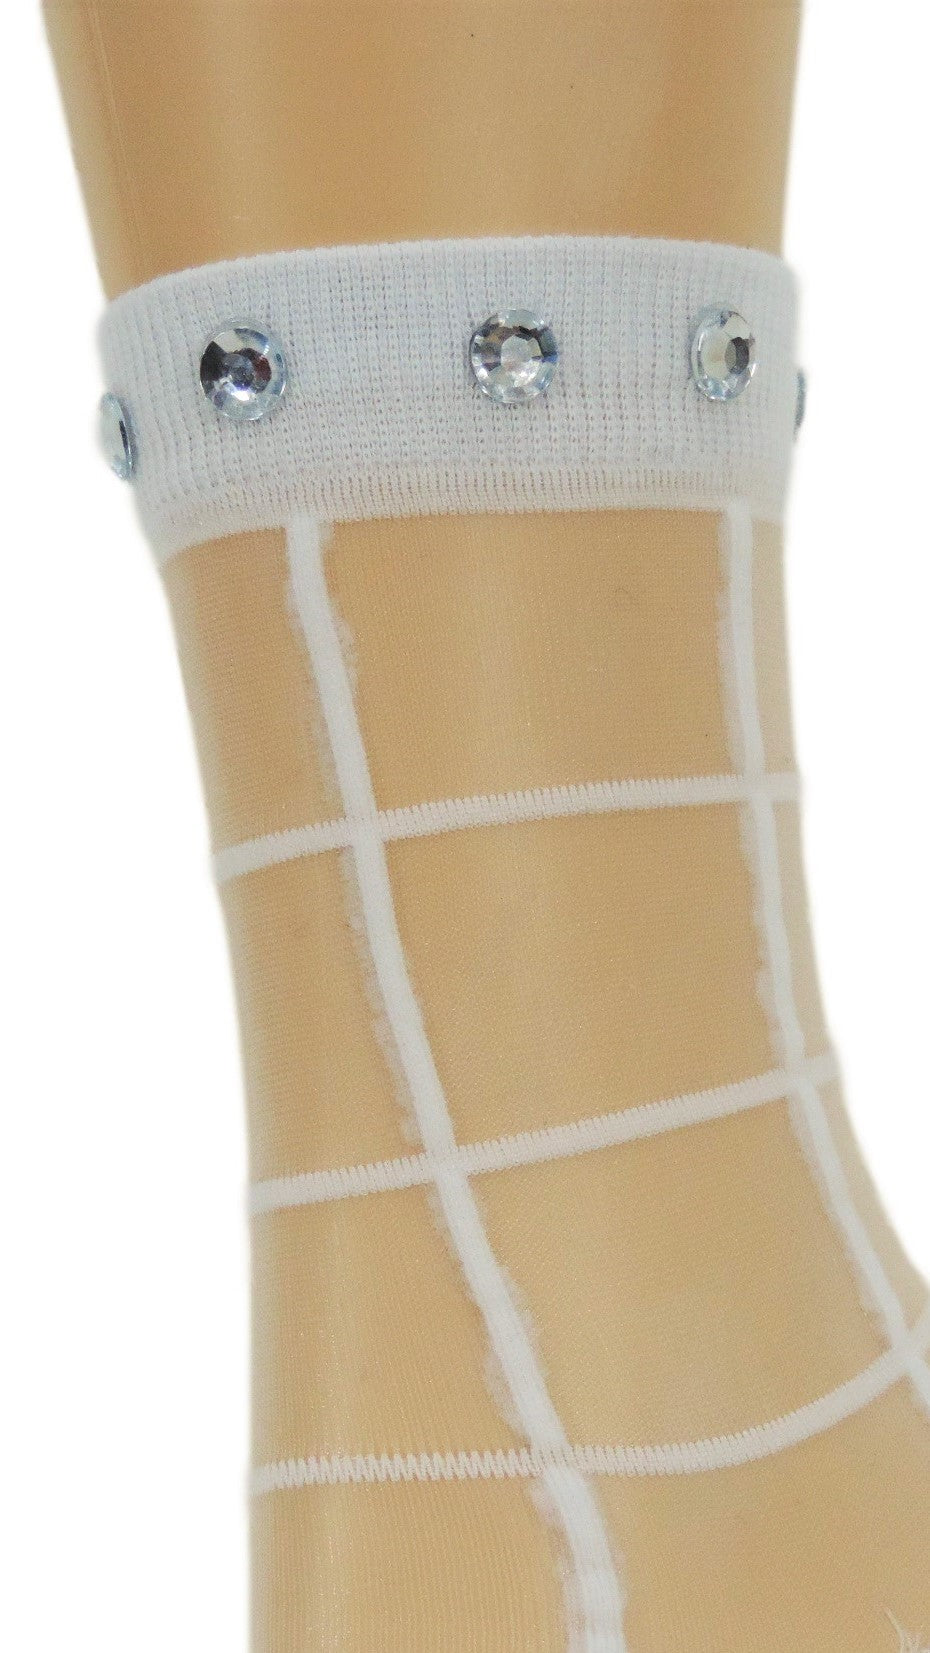 Calm White Square Custom Sheer Socks with crystals - Global Trendz Fashion®